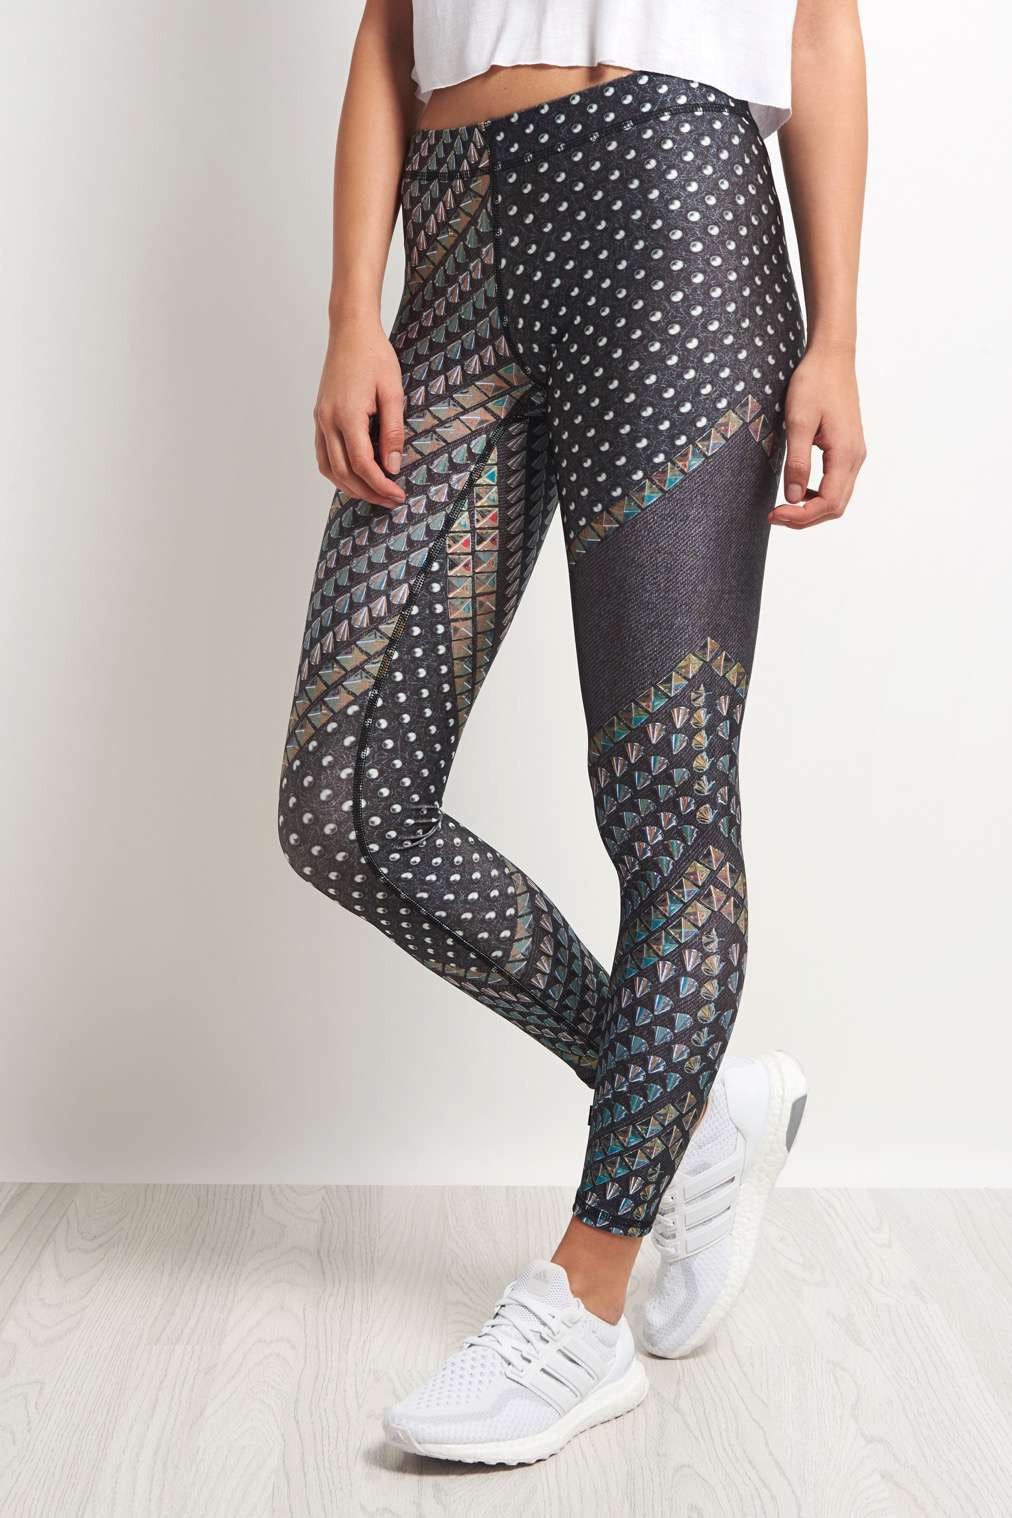 Terez You're a Stud Performance Legging image 1 - The Sports Edit